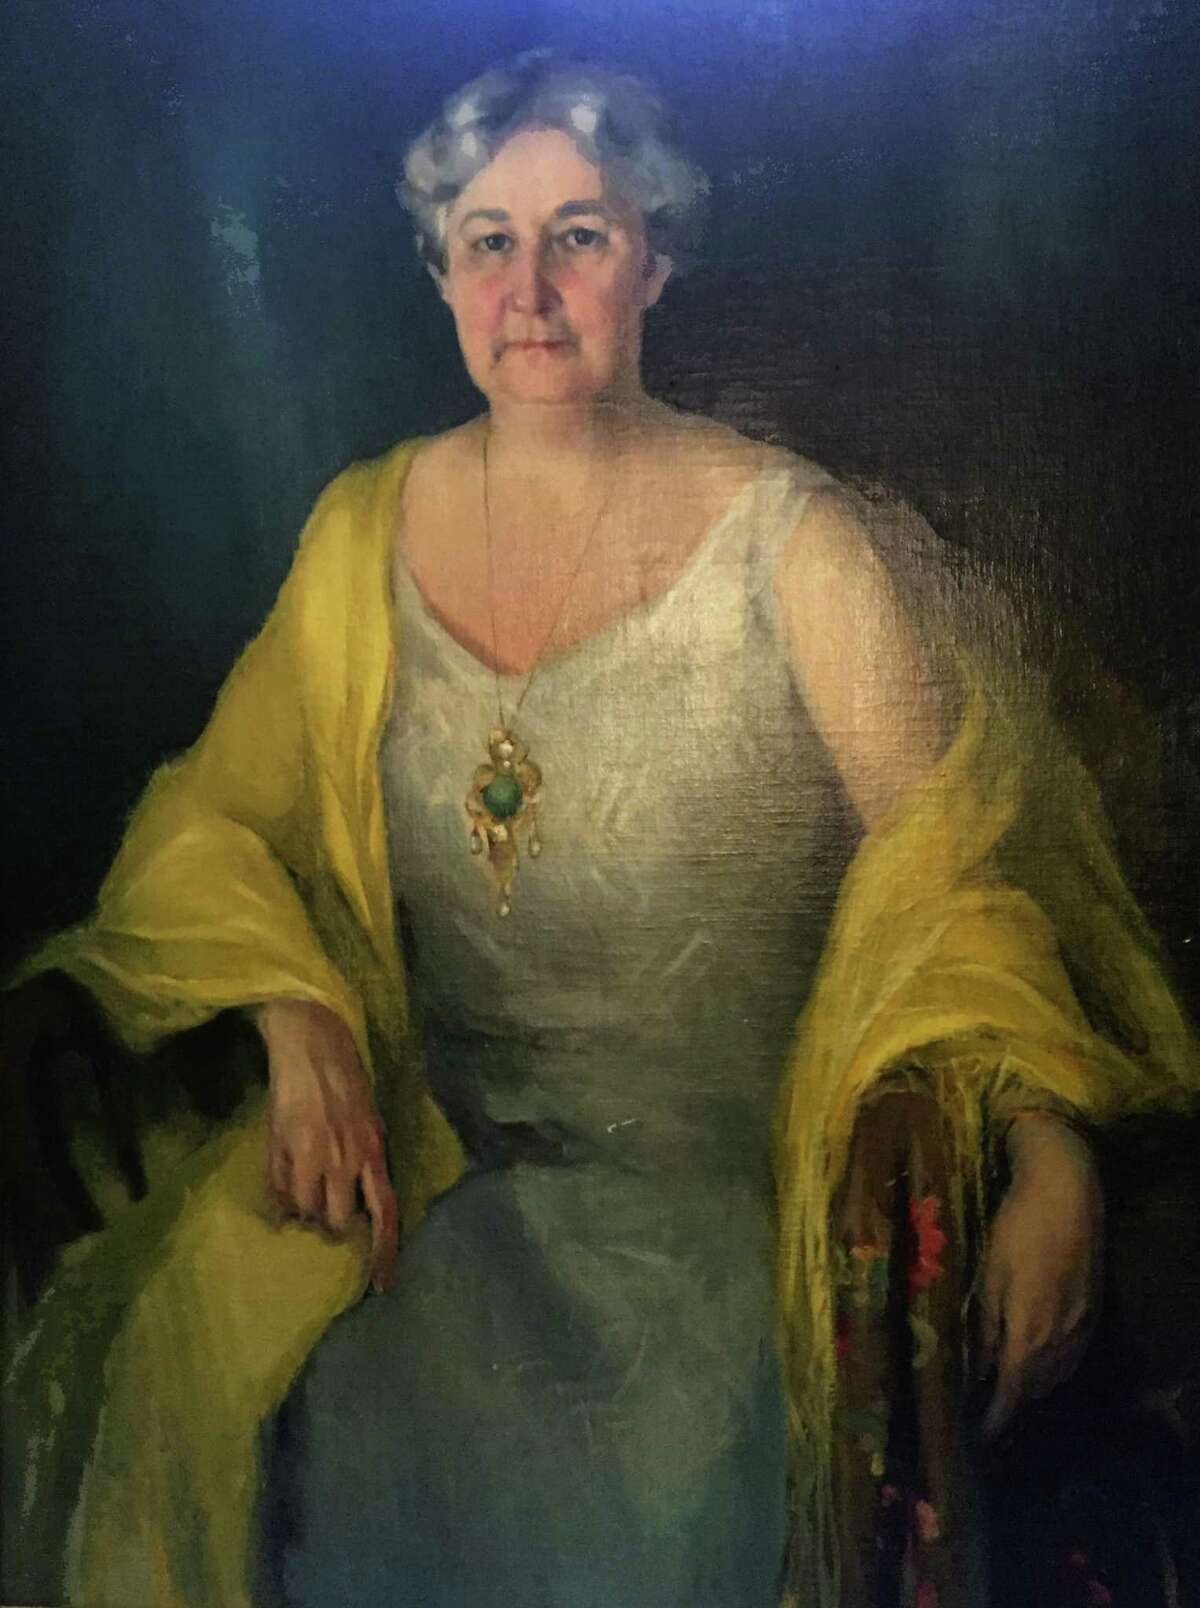 Portrait of Mrs. Ethel Turnstall Drought by Rosamund Niles, painted in 1931. She was a founder and longtime president of the San Antonio Art League & Museum